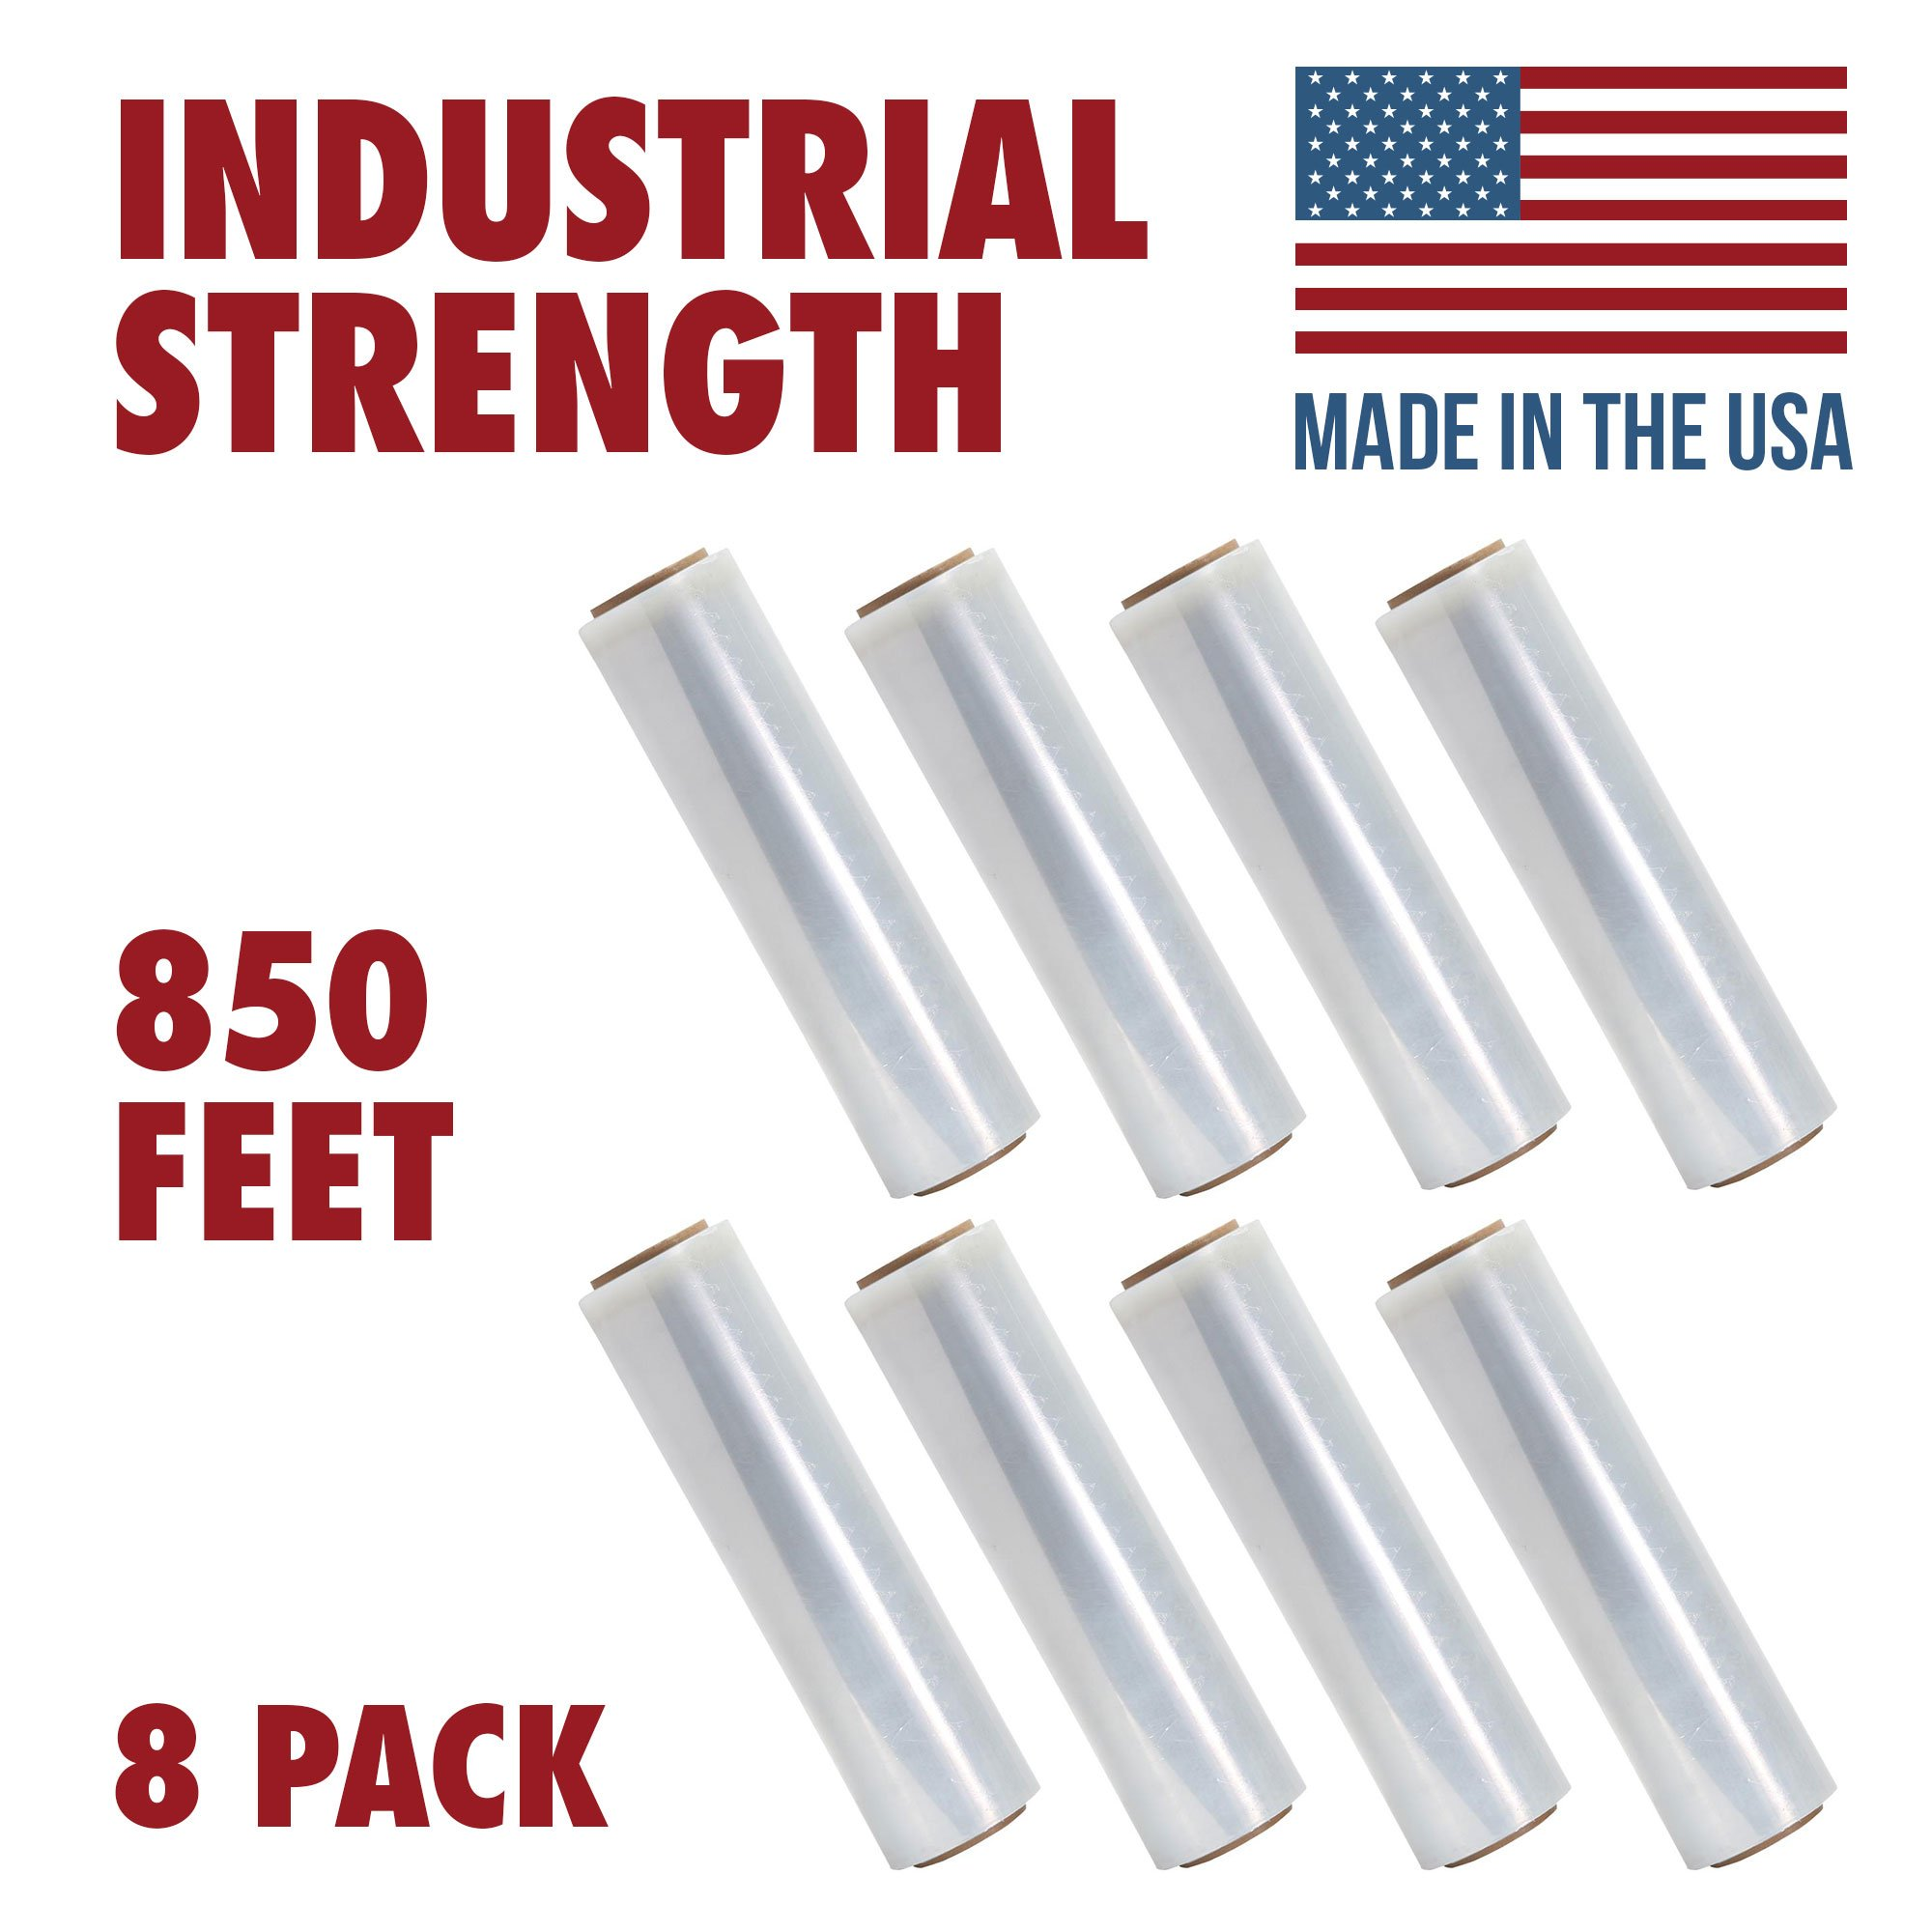 18 Inch X 850 feet Tough Pallet Shrink Wrap, 80 Gauge Industrial Strength, Commercial Grade Strength Film, Moving & Packing Wrap, For Furniture, Boxes, Pallets (8-Pack)